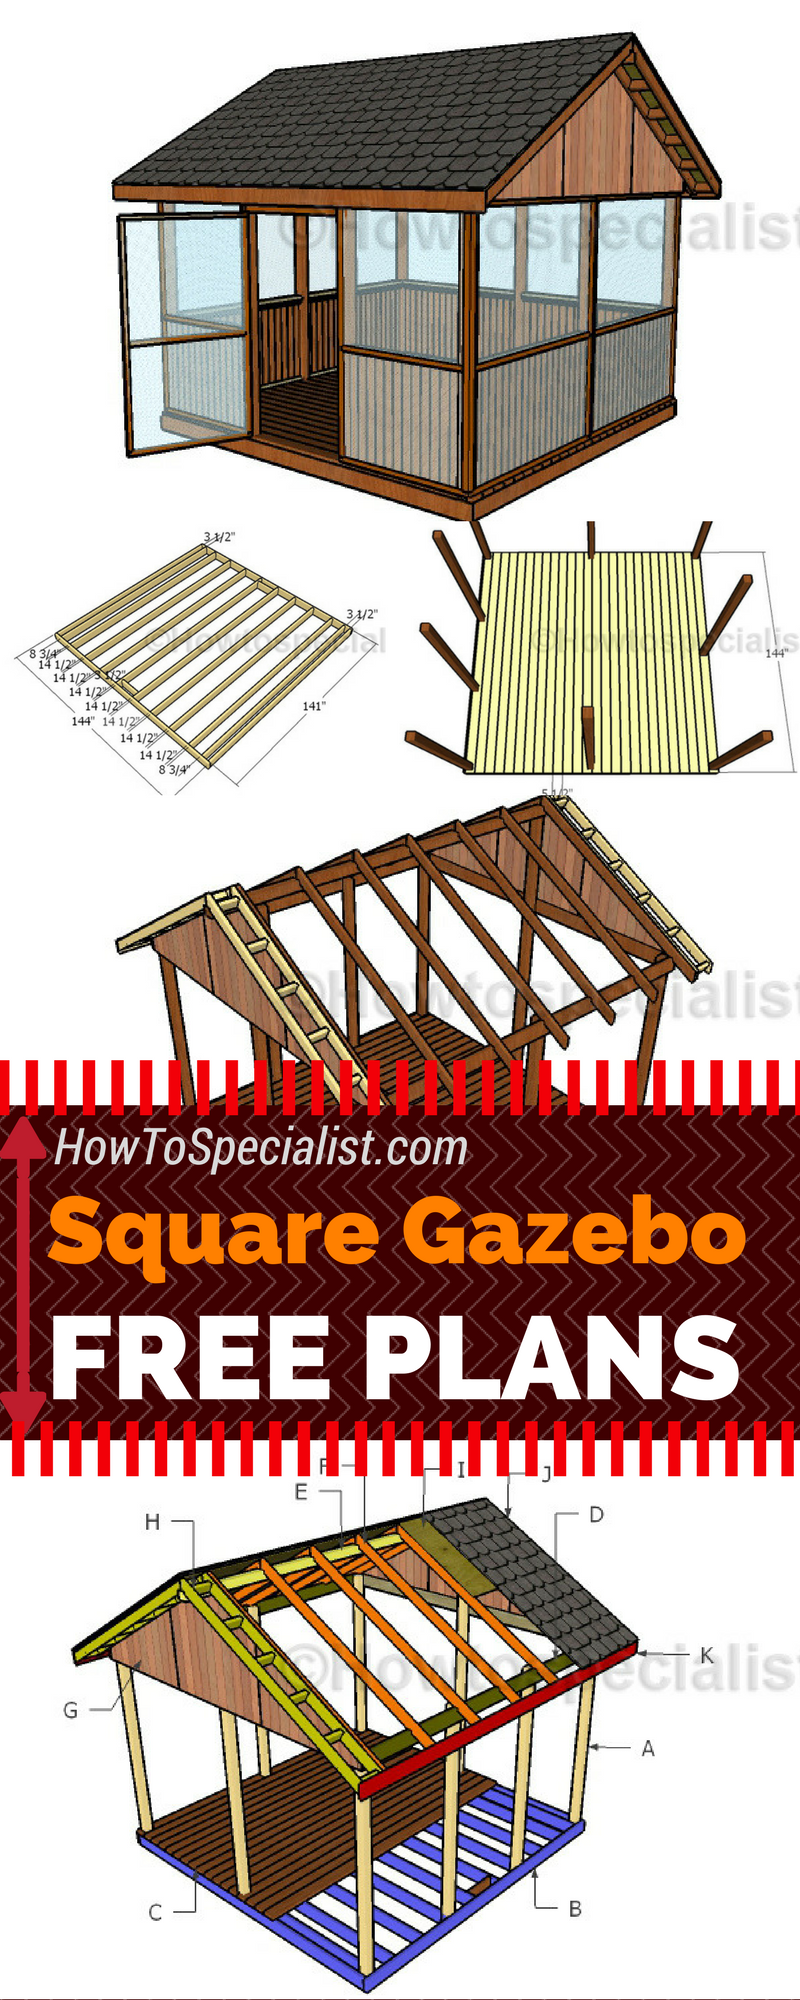 hight resolution of it is super easy to build a screened gazebo for your backyard check out my free square gazebo plans and follow the step by step instructions diy gazebo